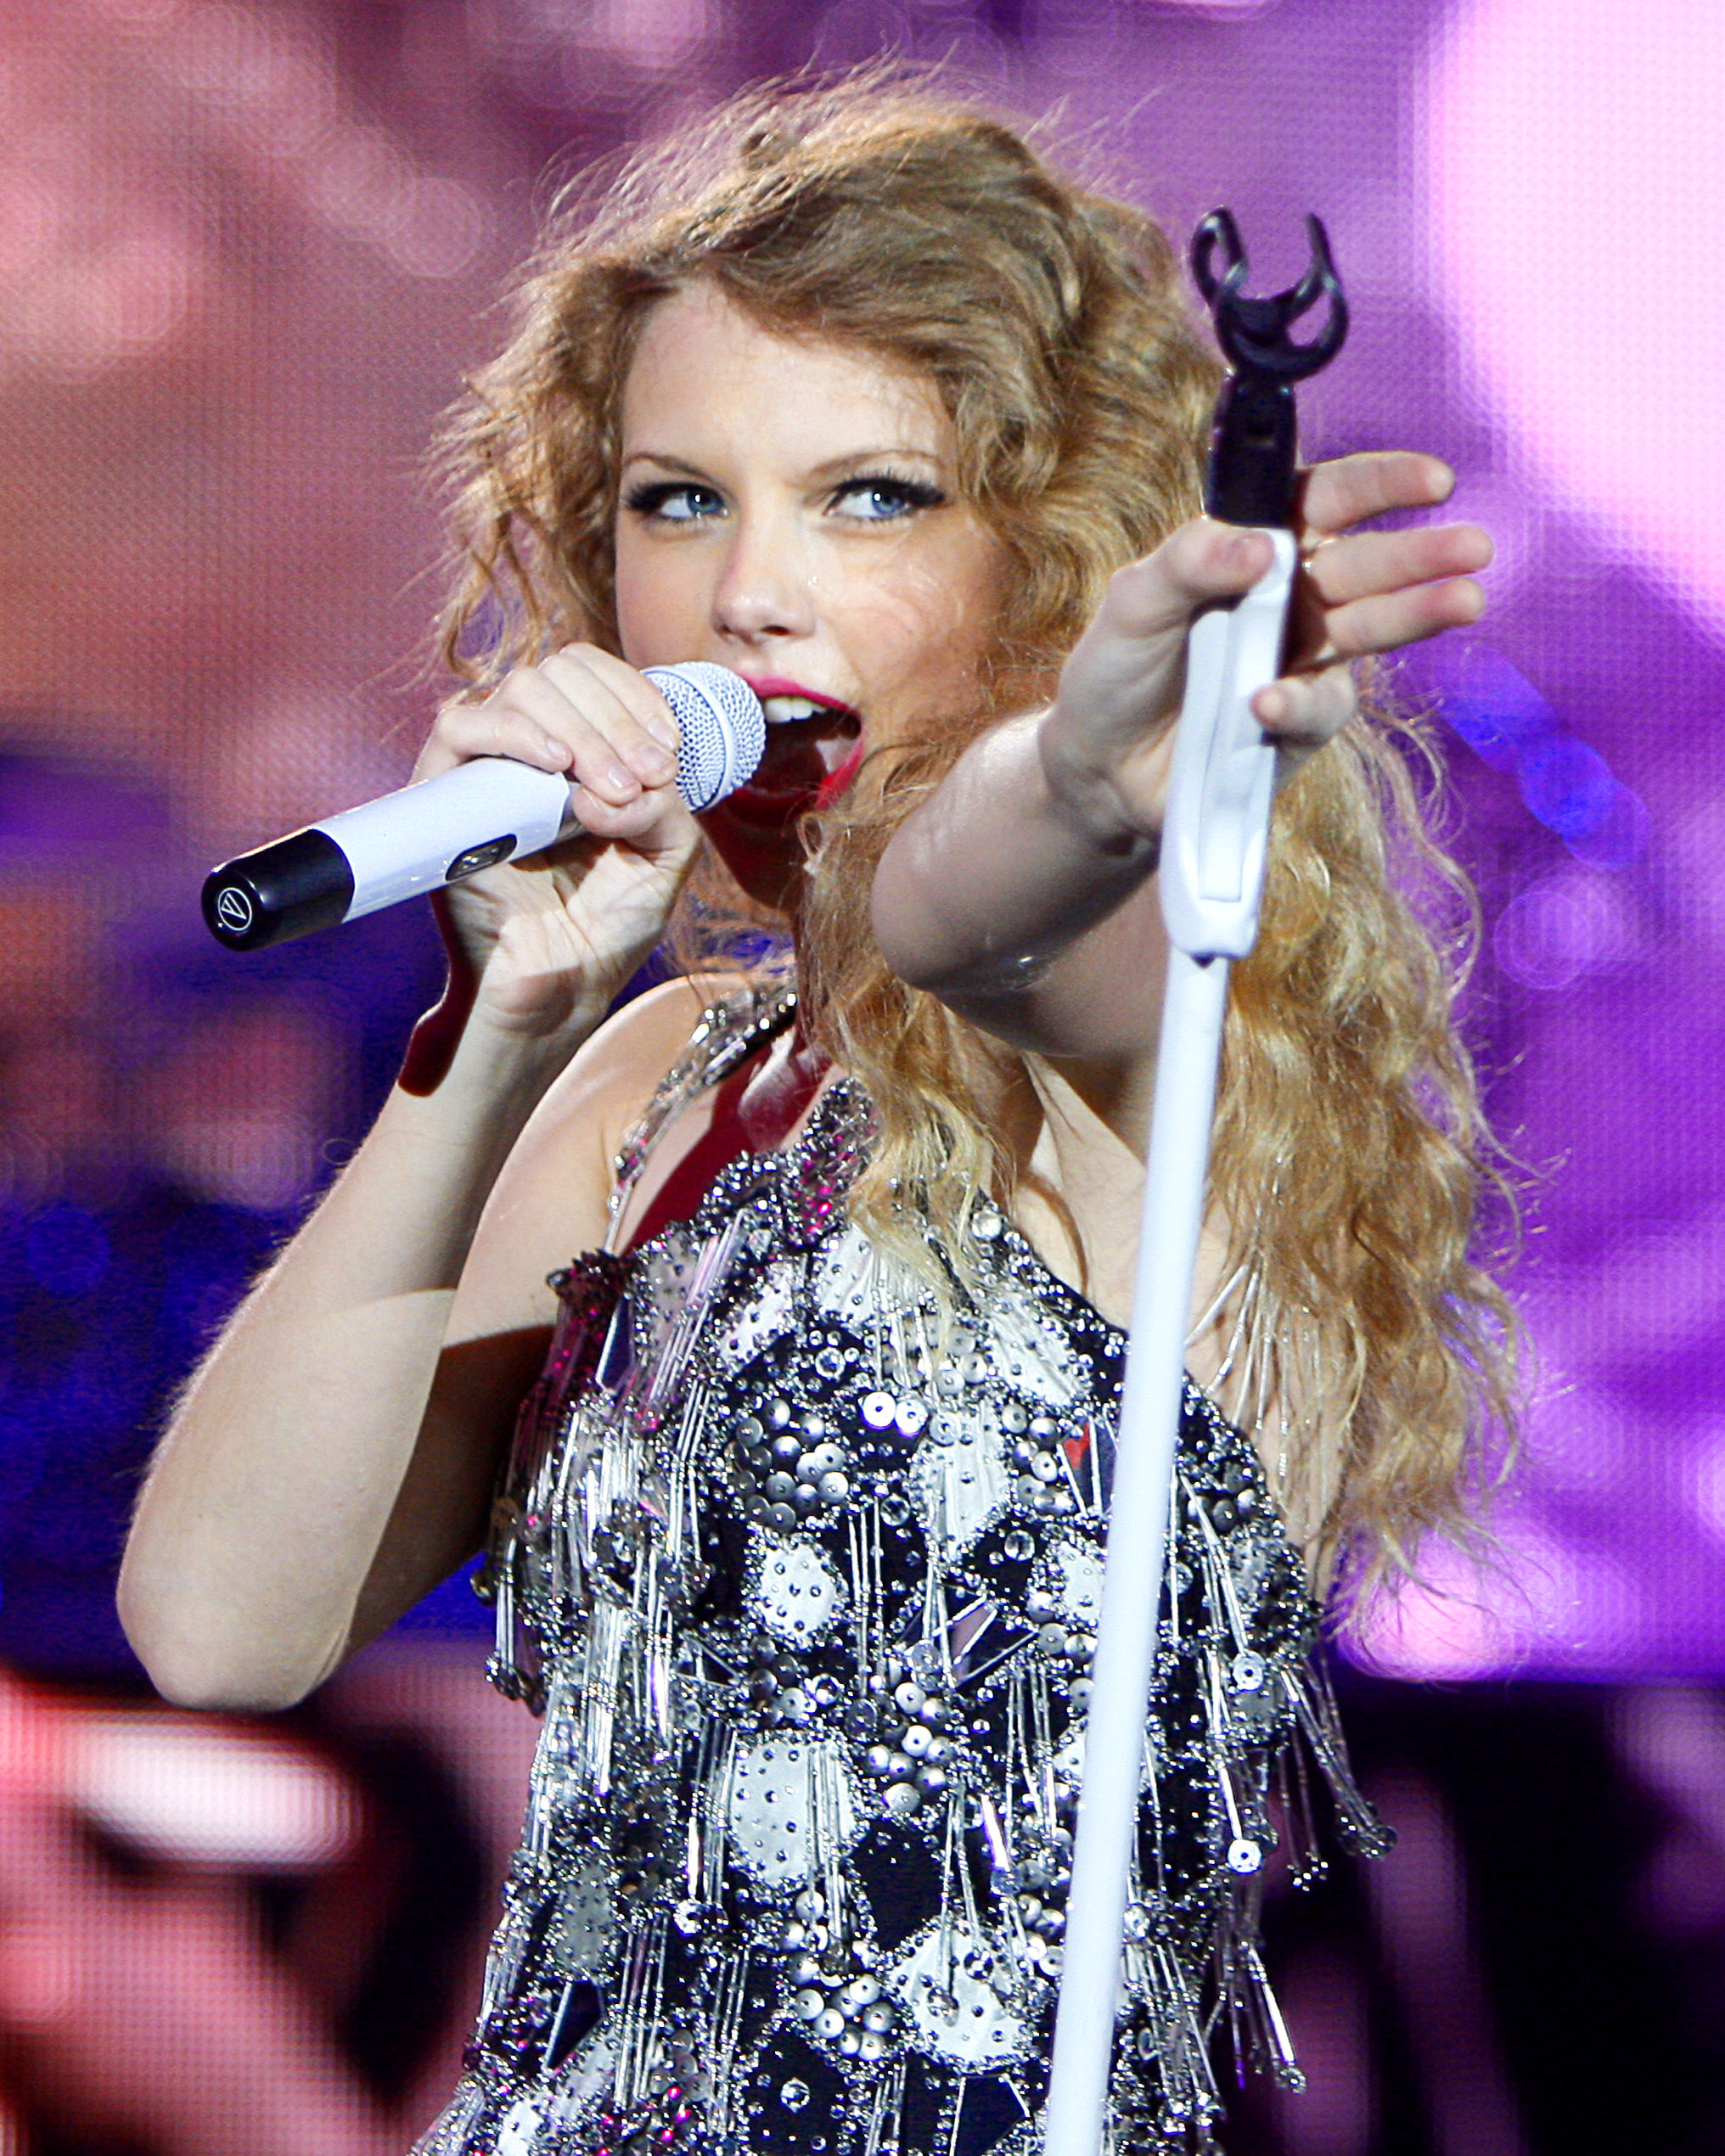 Taylor Swift Loves Playing Gillette Here S A Look Back At Her Past Performances The Boston Globe